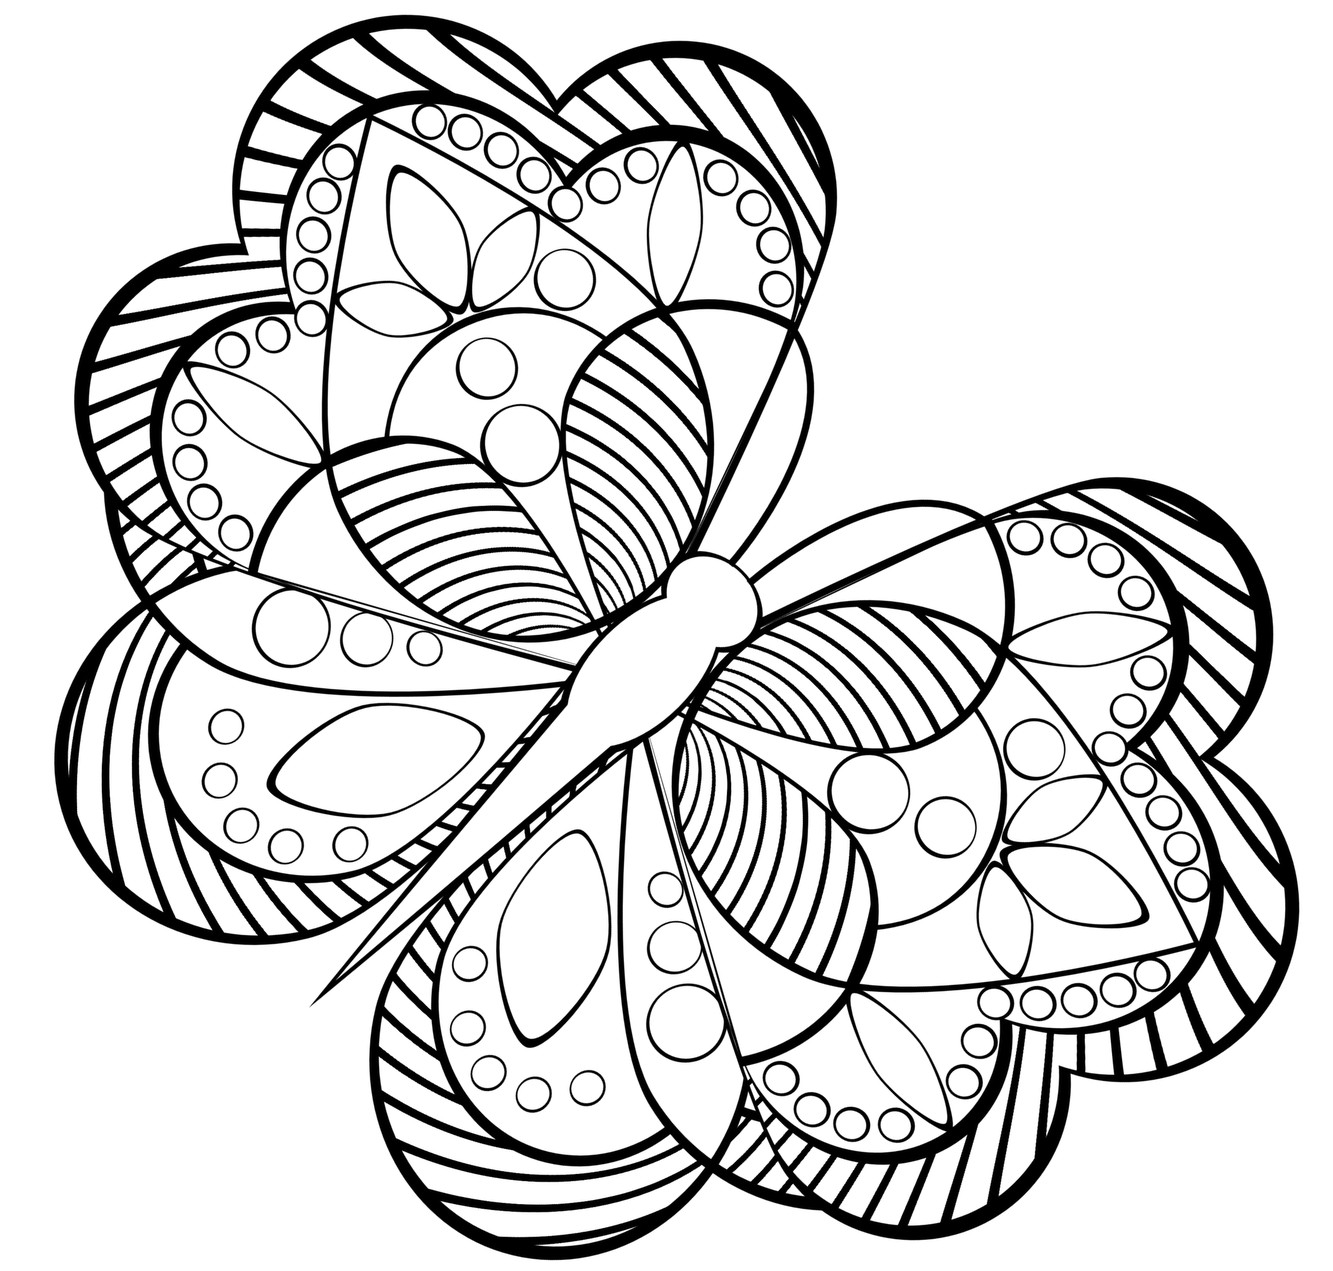 Cool Adult Coloring Pages  52 Free Printable Advanced Coloring Pages Advanced Skill